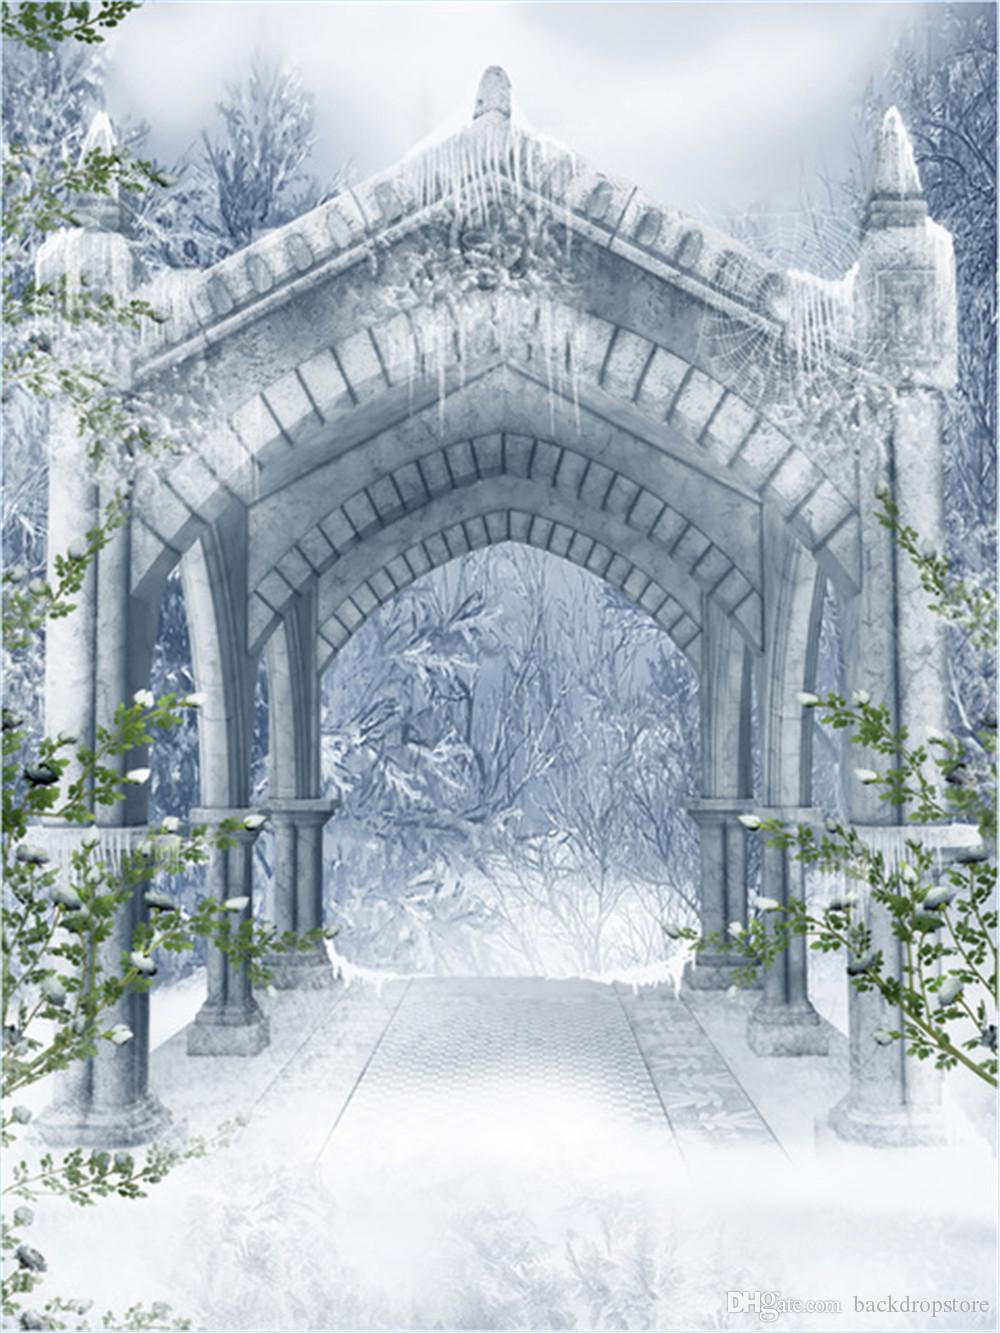 Outdoor Winter Snow Scenic Photography Backdrops Vinyl Vintage Stone Pavilion White Flower Trees Garden Photo Studio Background